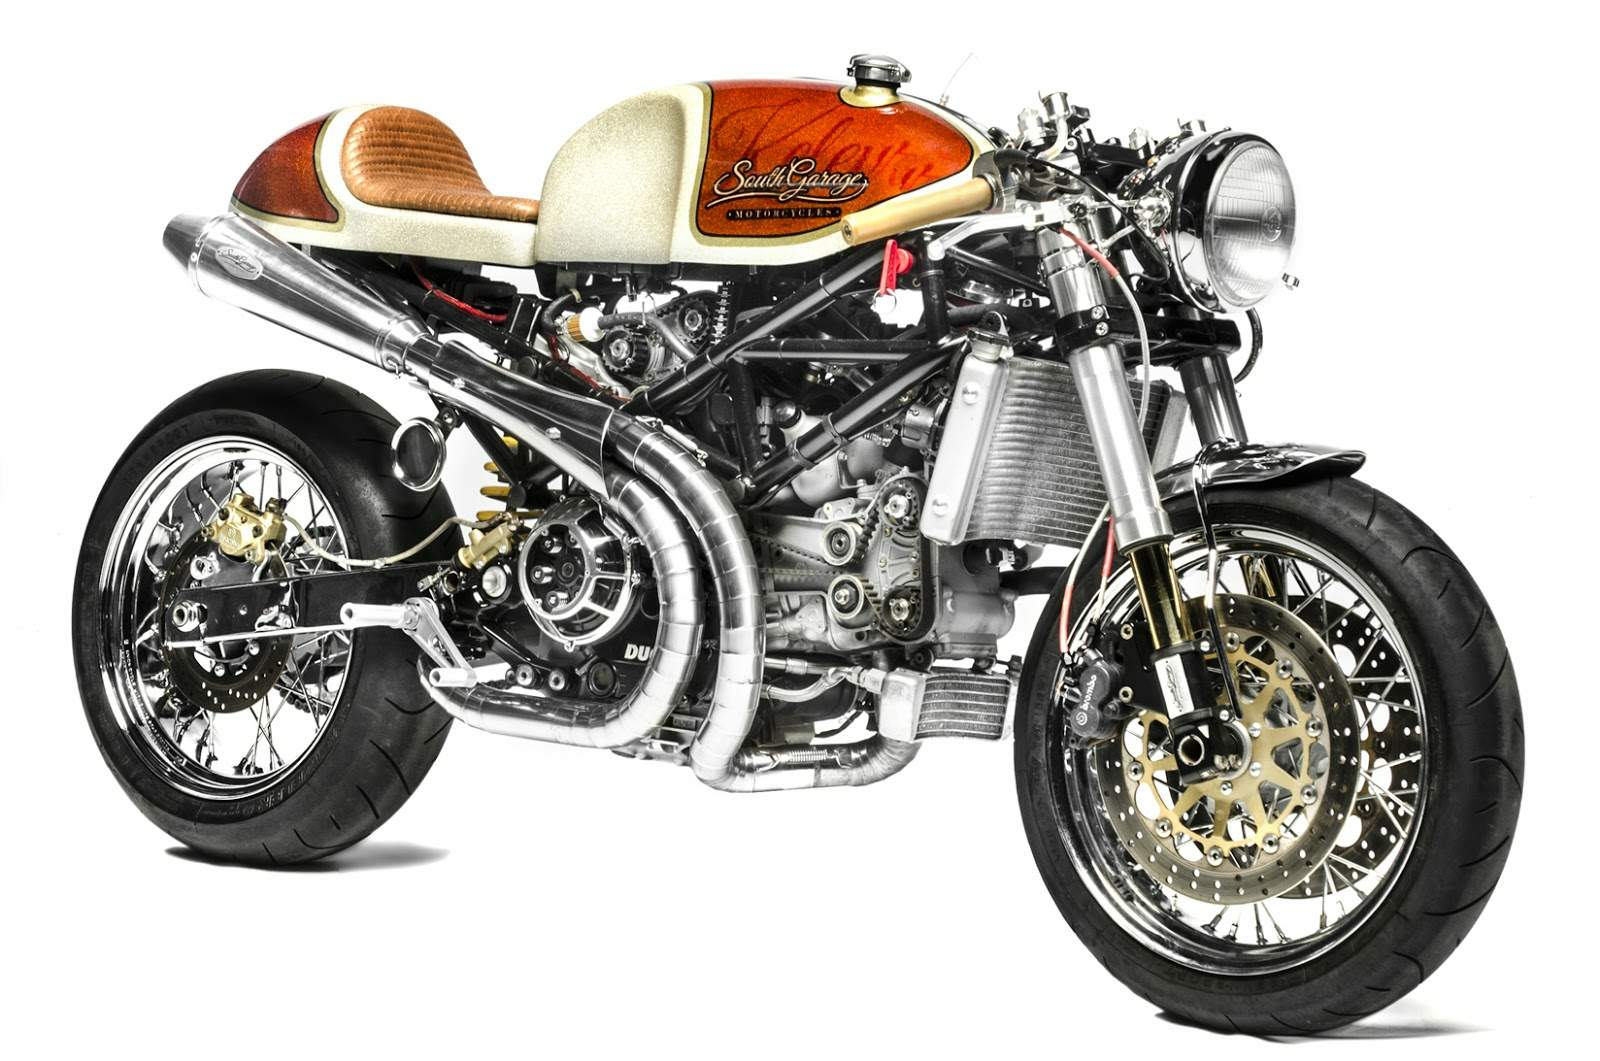 ducati monster s4r cafe racer way2speed. Black Bedroom Furniture Sets. Home Design Ideas